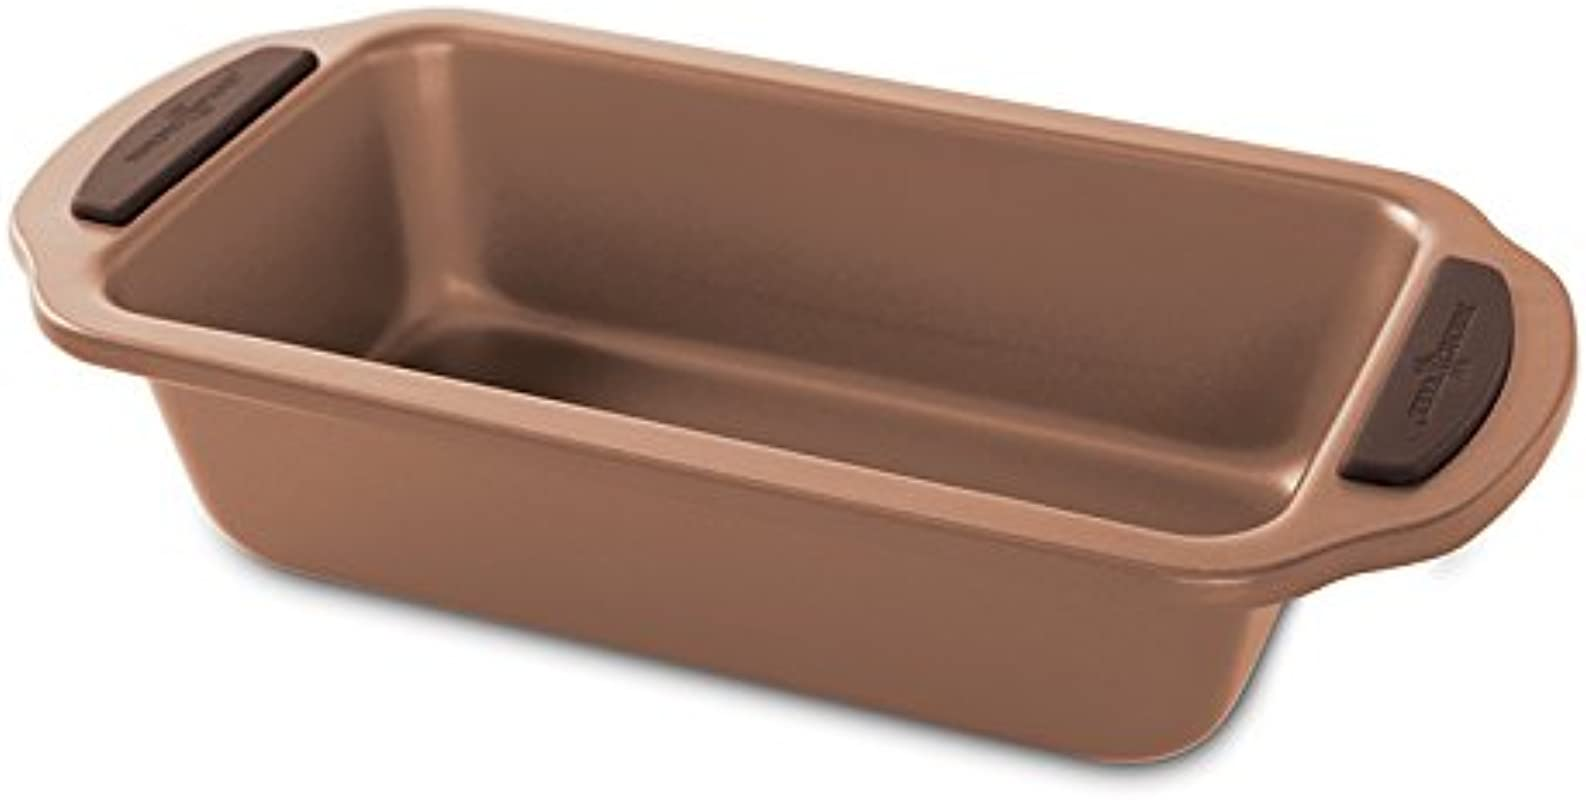 Nordic Ware 48643 Freshly Baked Loaf Pan 12 X 2 5 Copper